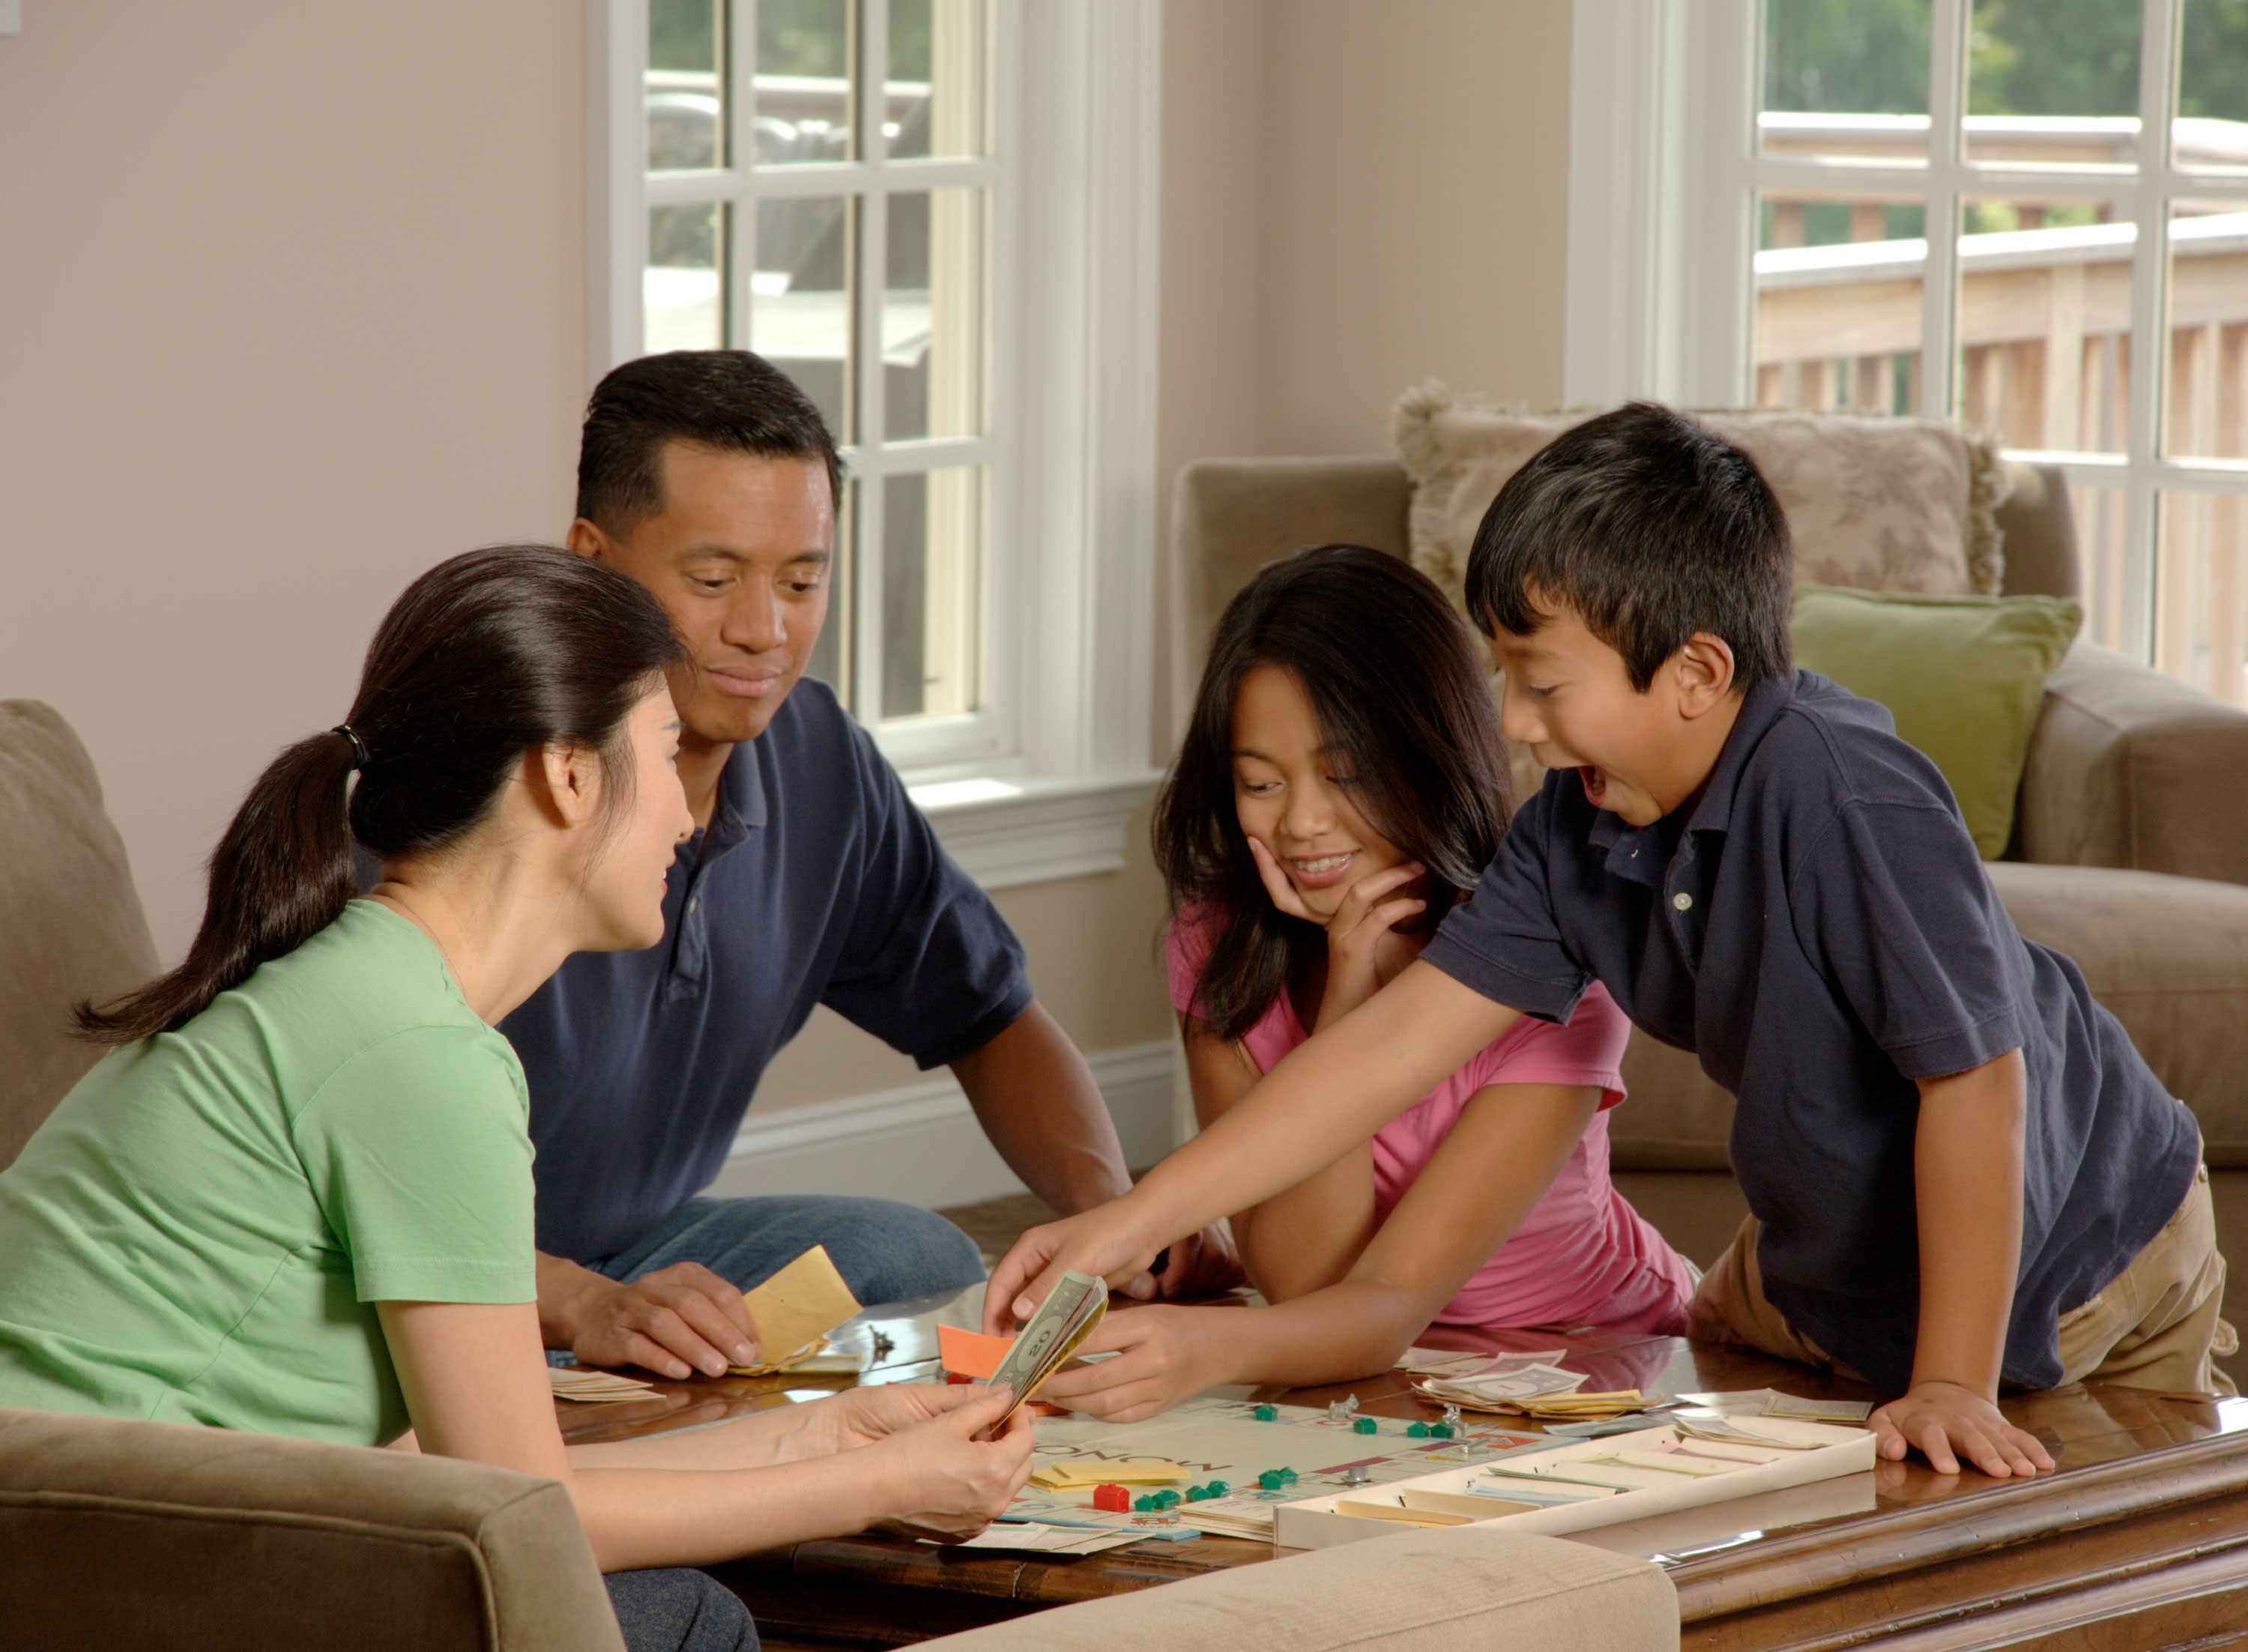 Family_playing_a_board_game_3.jpg